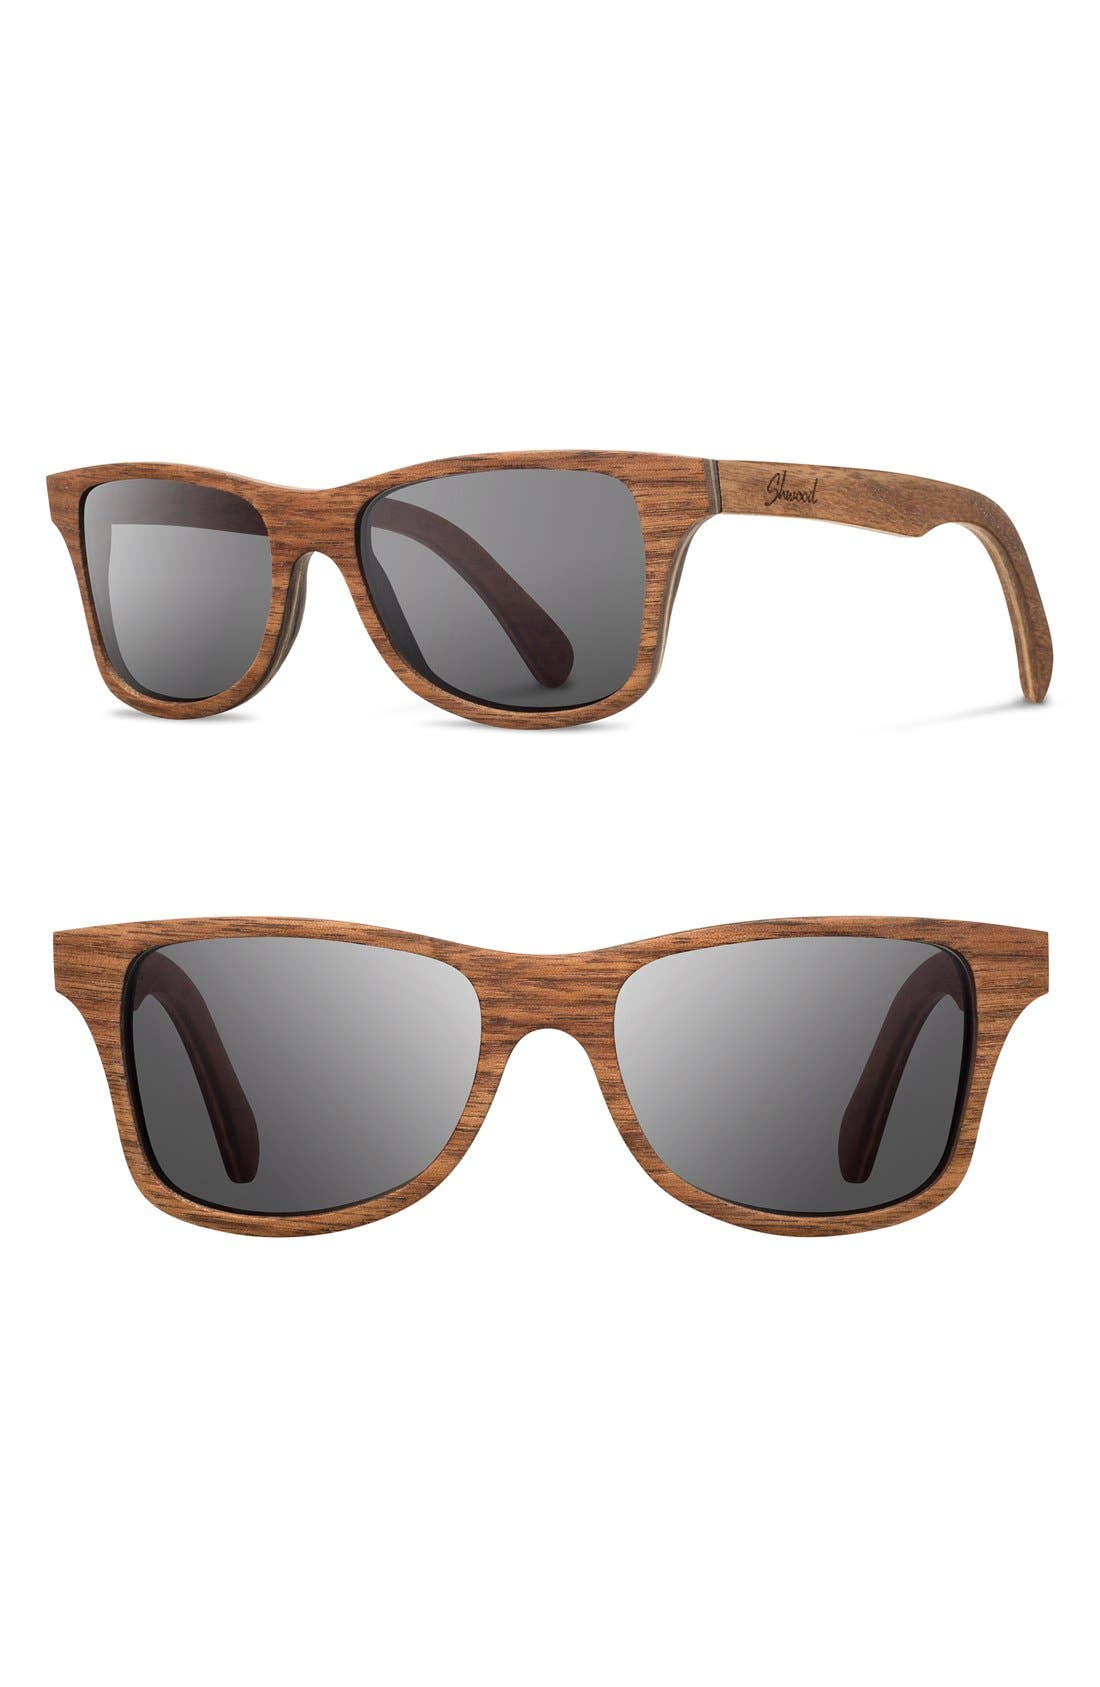 'Canby' 54mm Wood Sunglasses,                         Main,                         color, 201